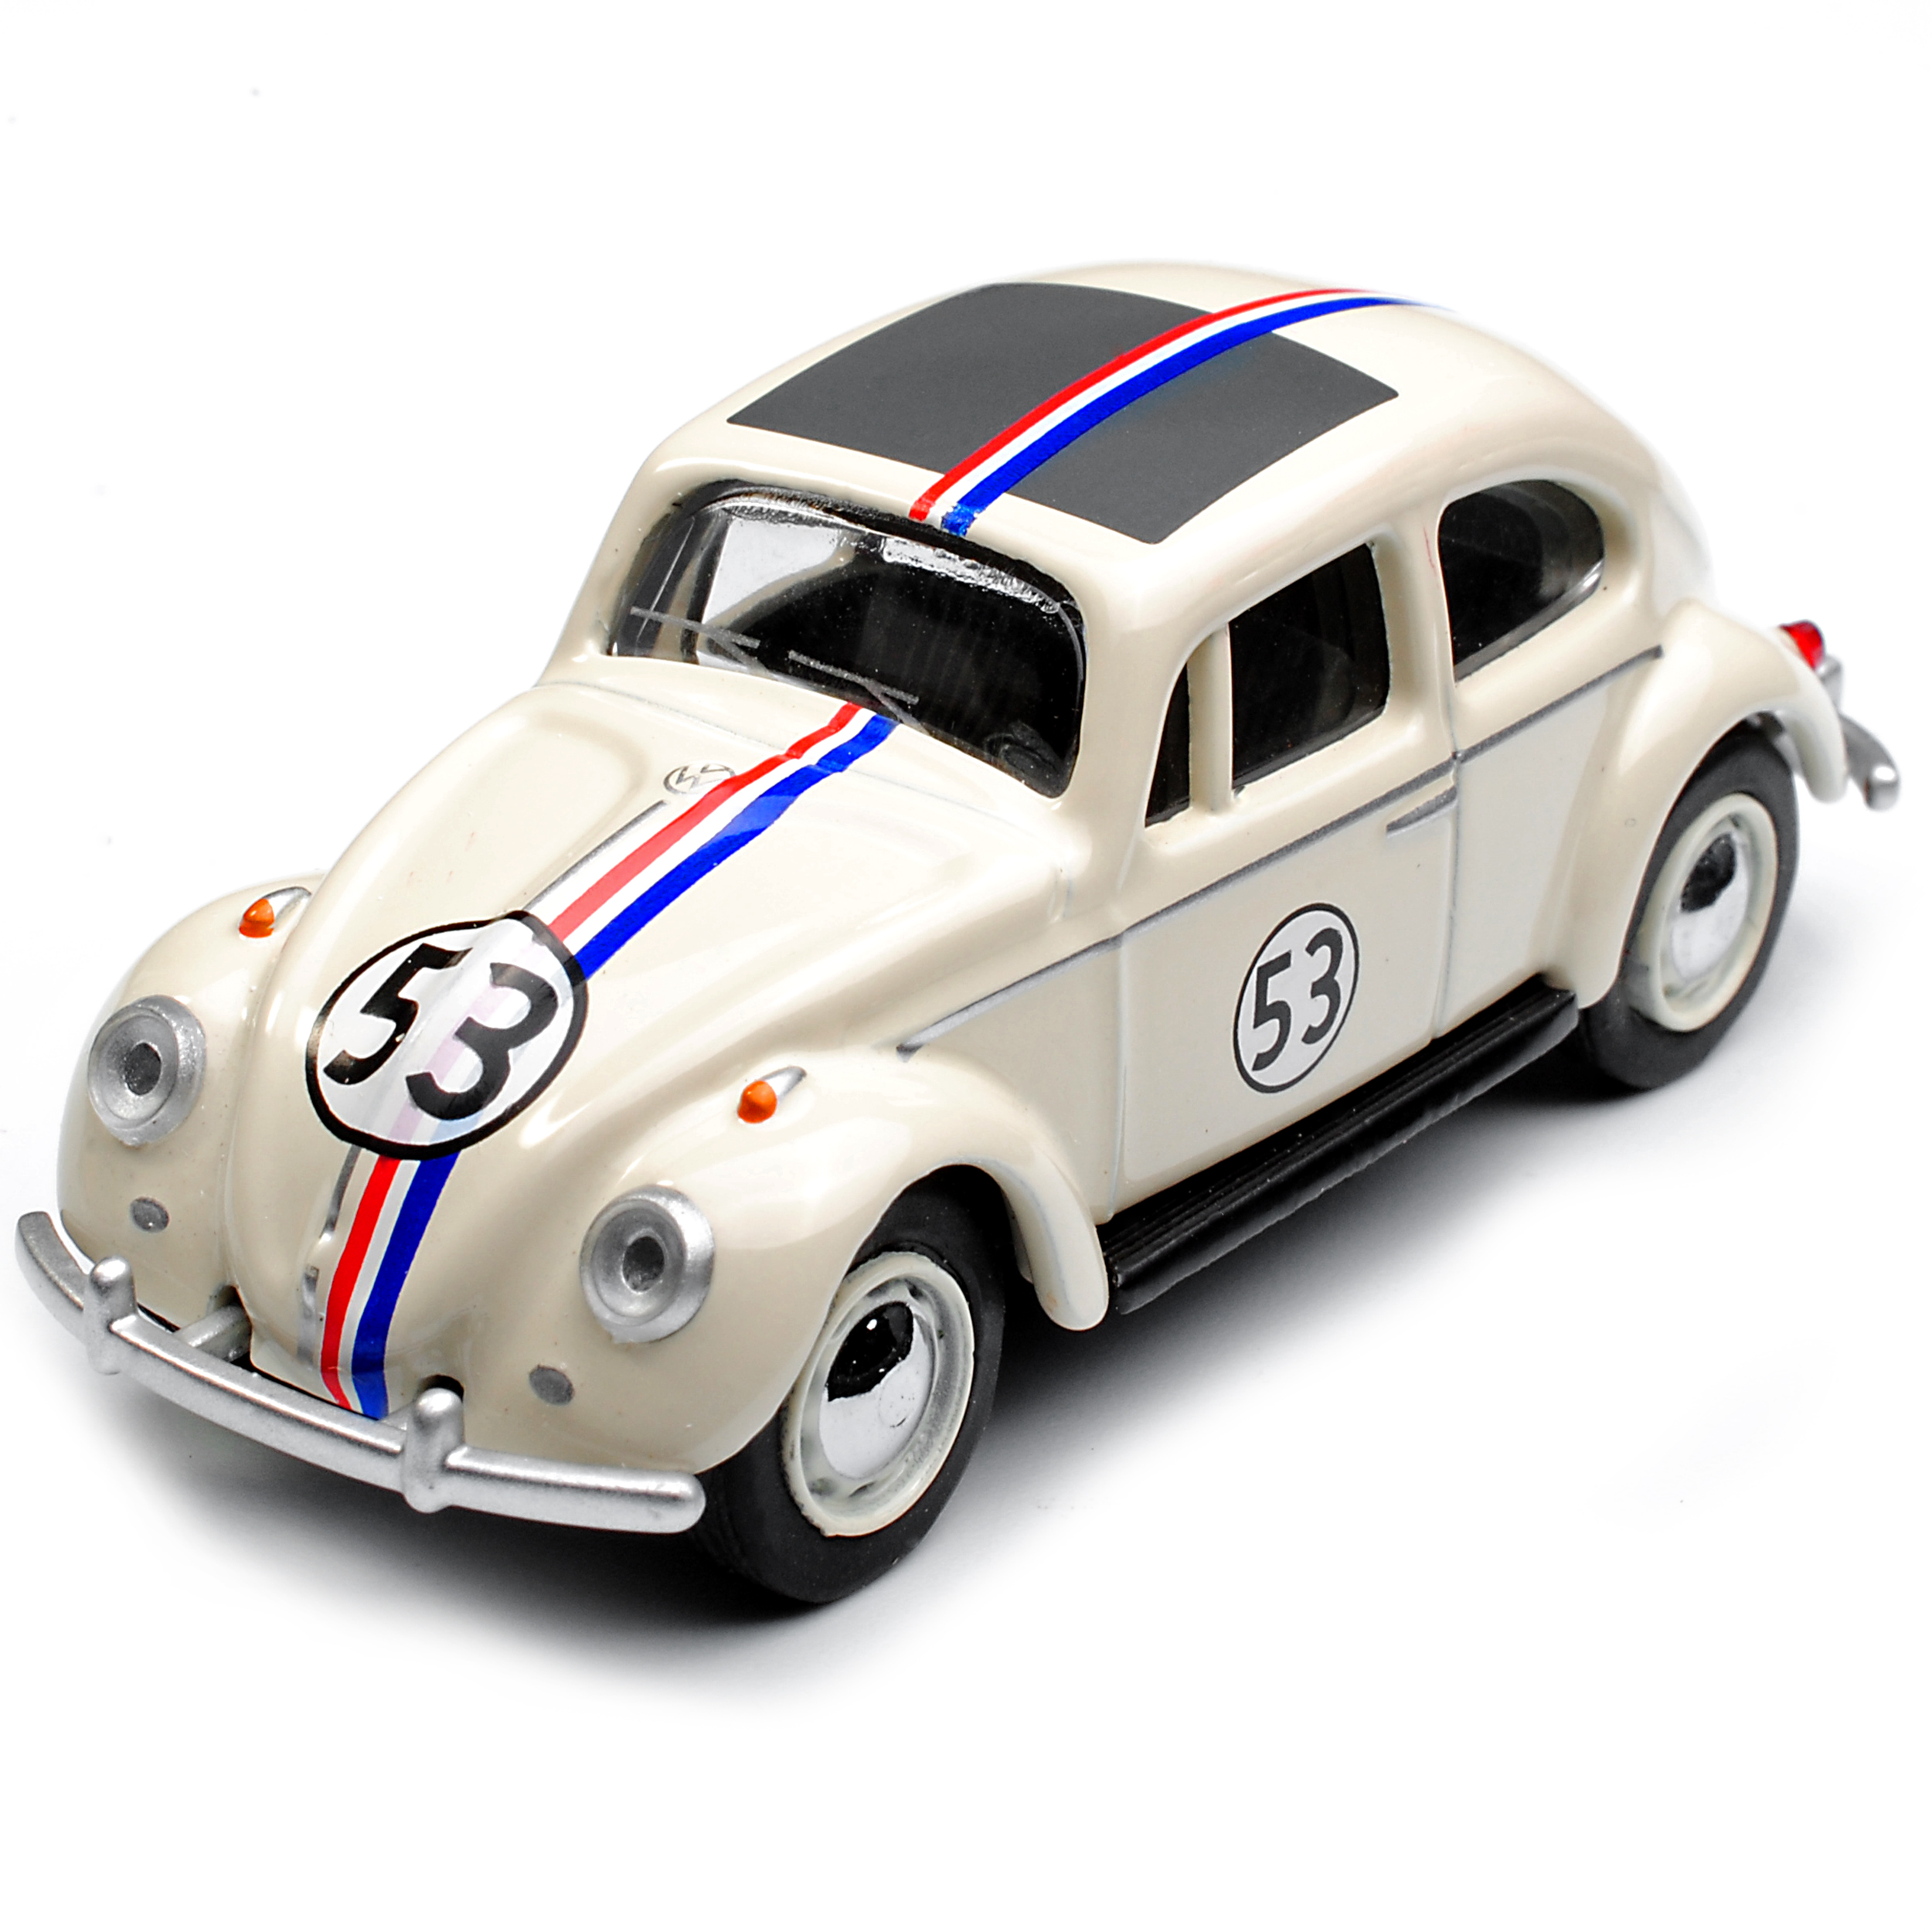 VW Volkswagen escarabajo Coupe Herbie rally nº 53 crema blanca 1//64 SCHUCO modelo au...